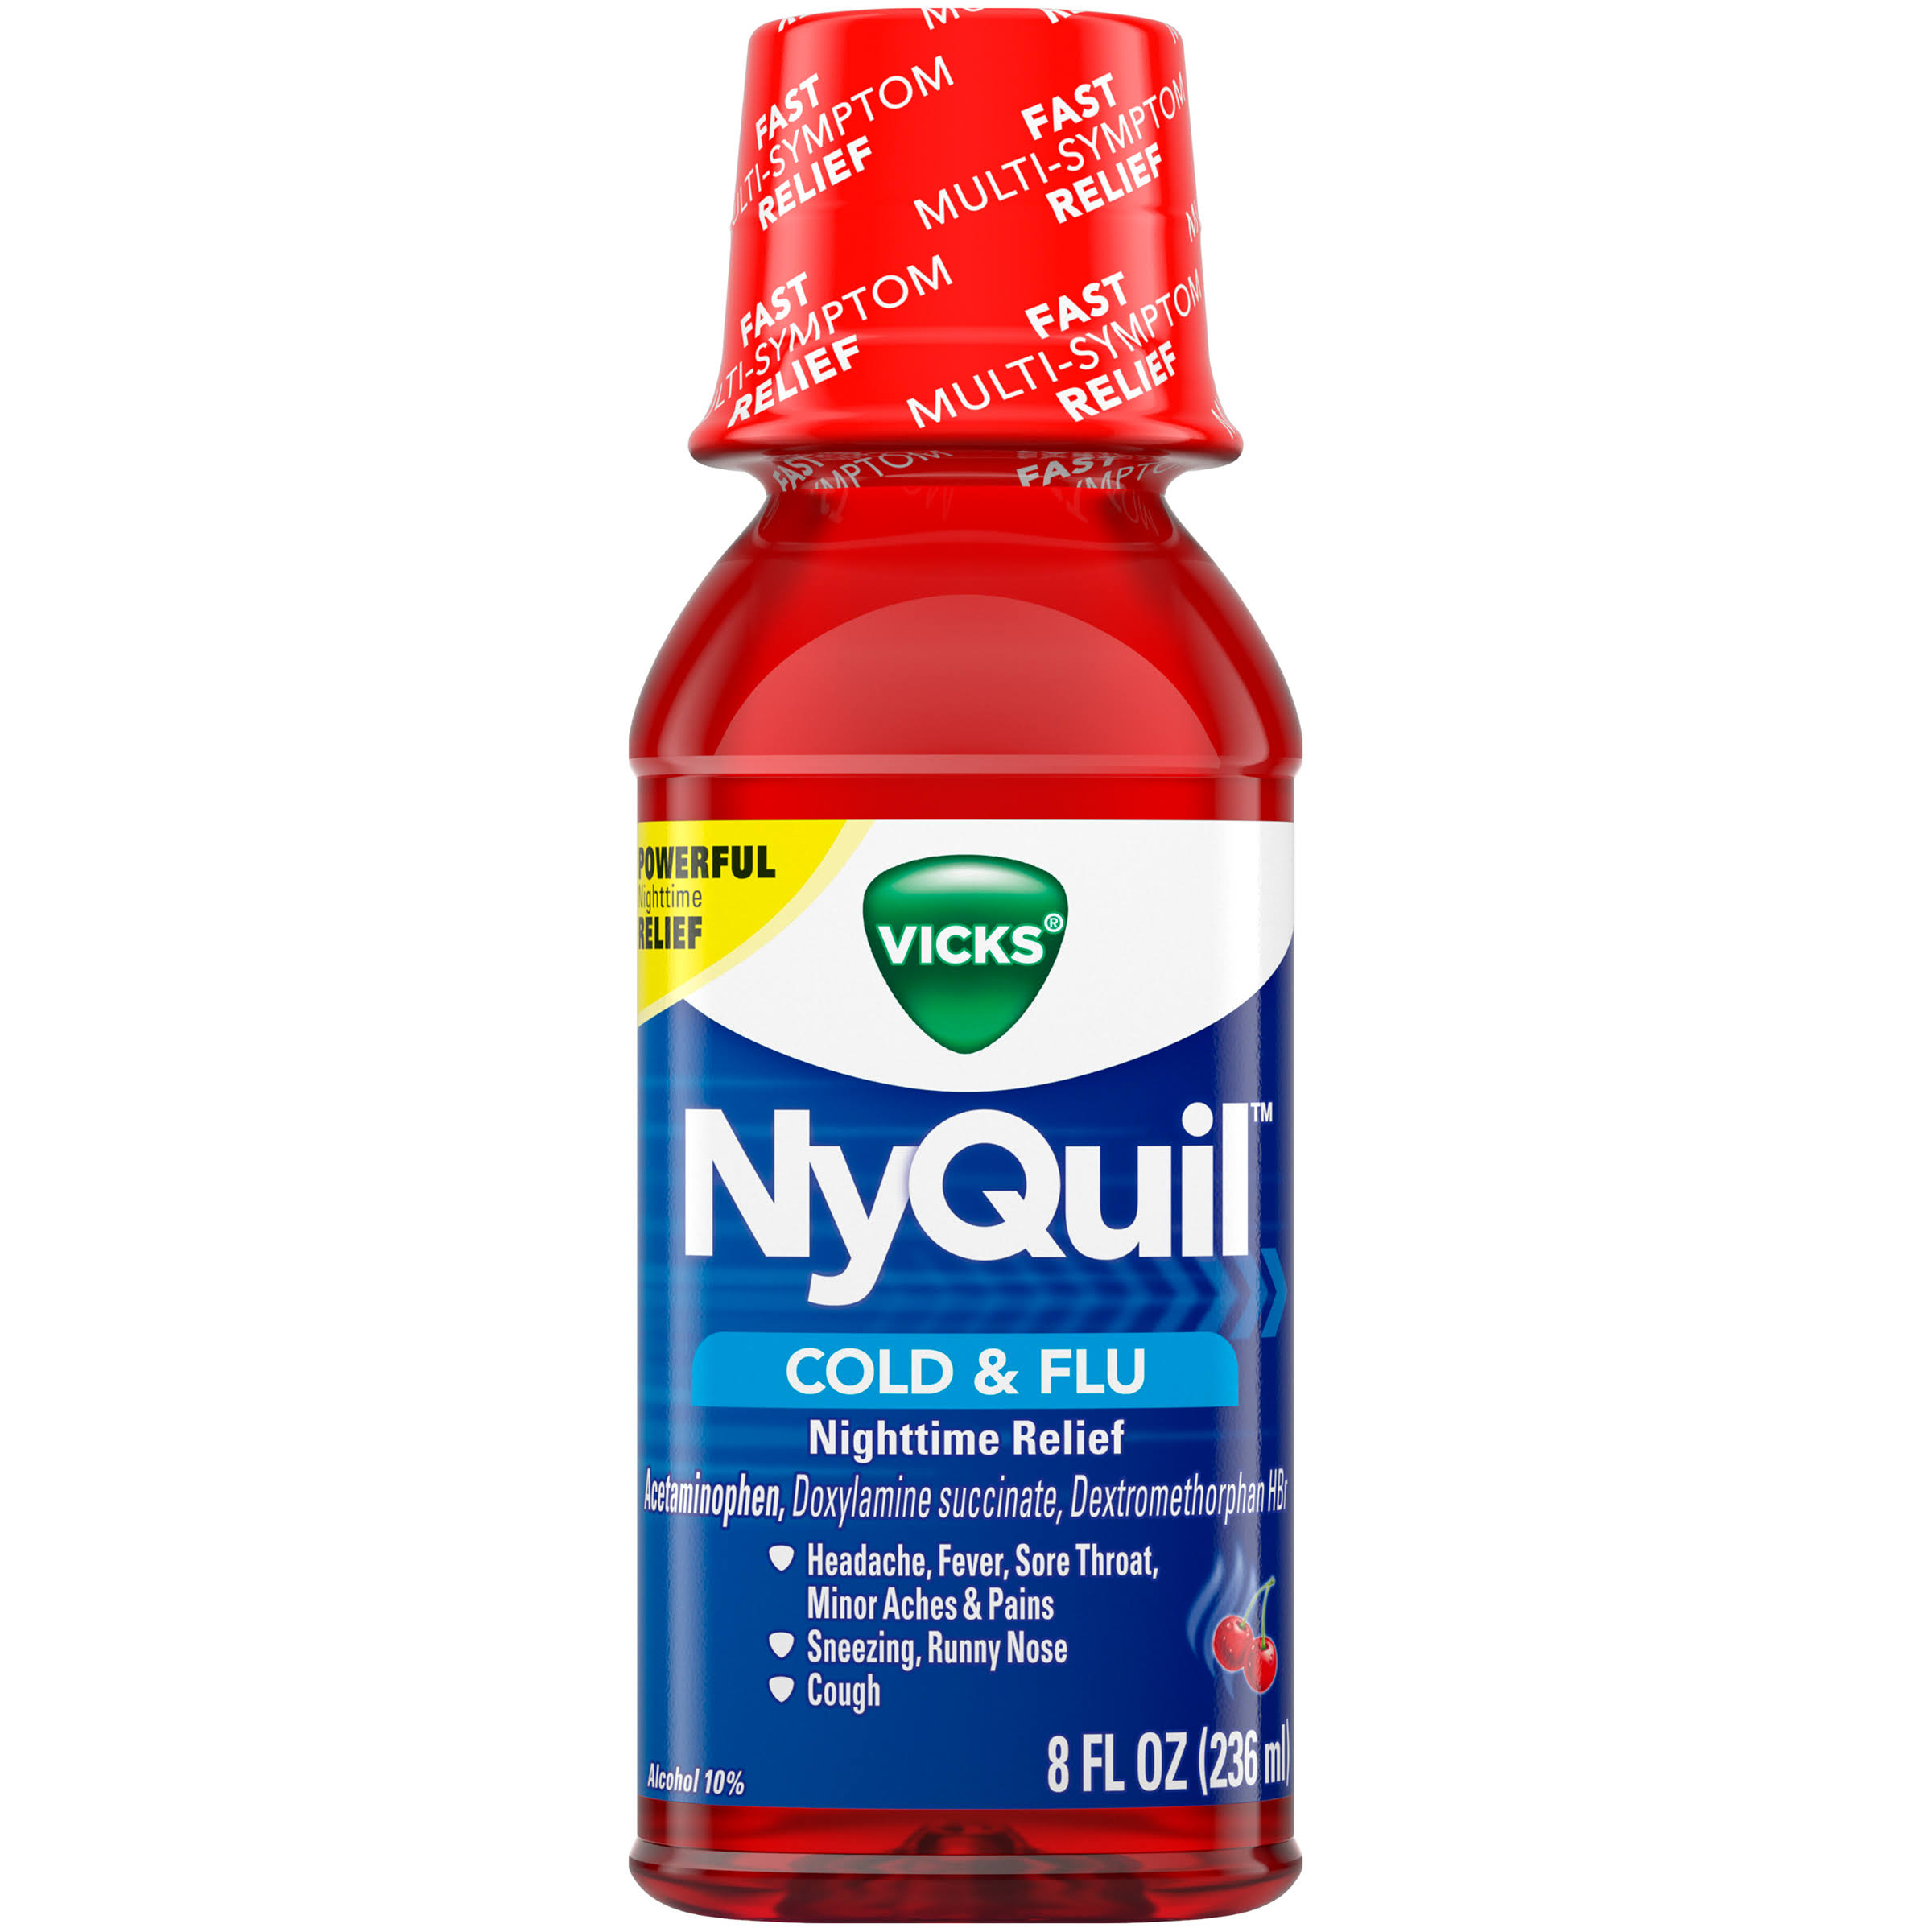 Vicks NyQuil Cold & Flu Nighttime Relief - 8 fl oz